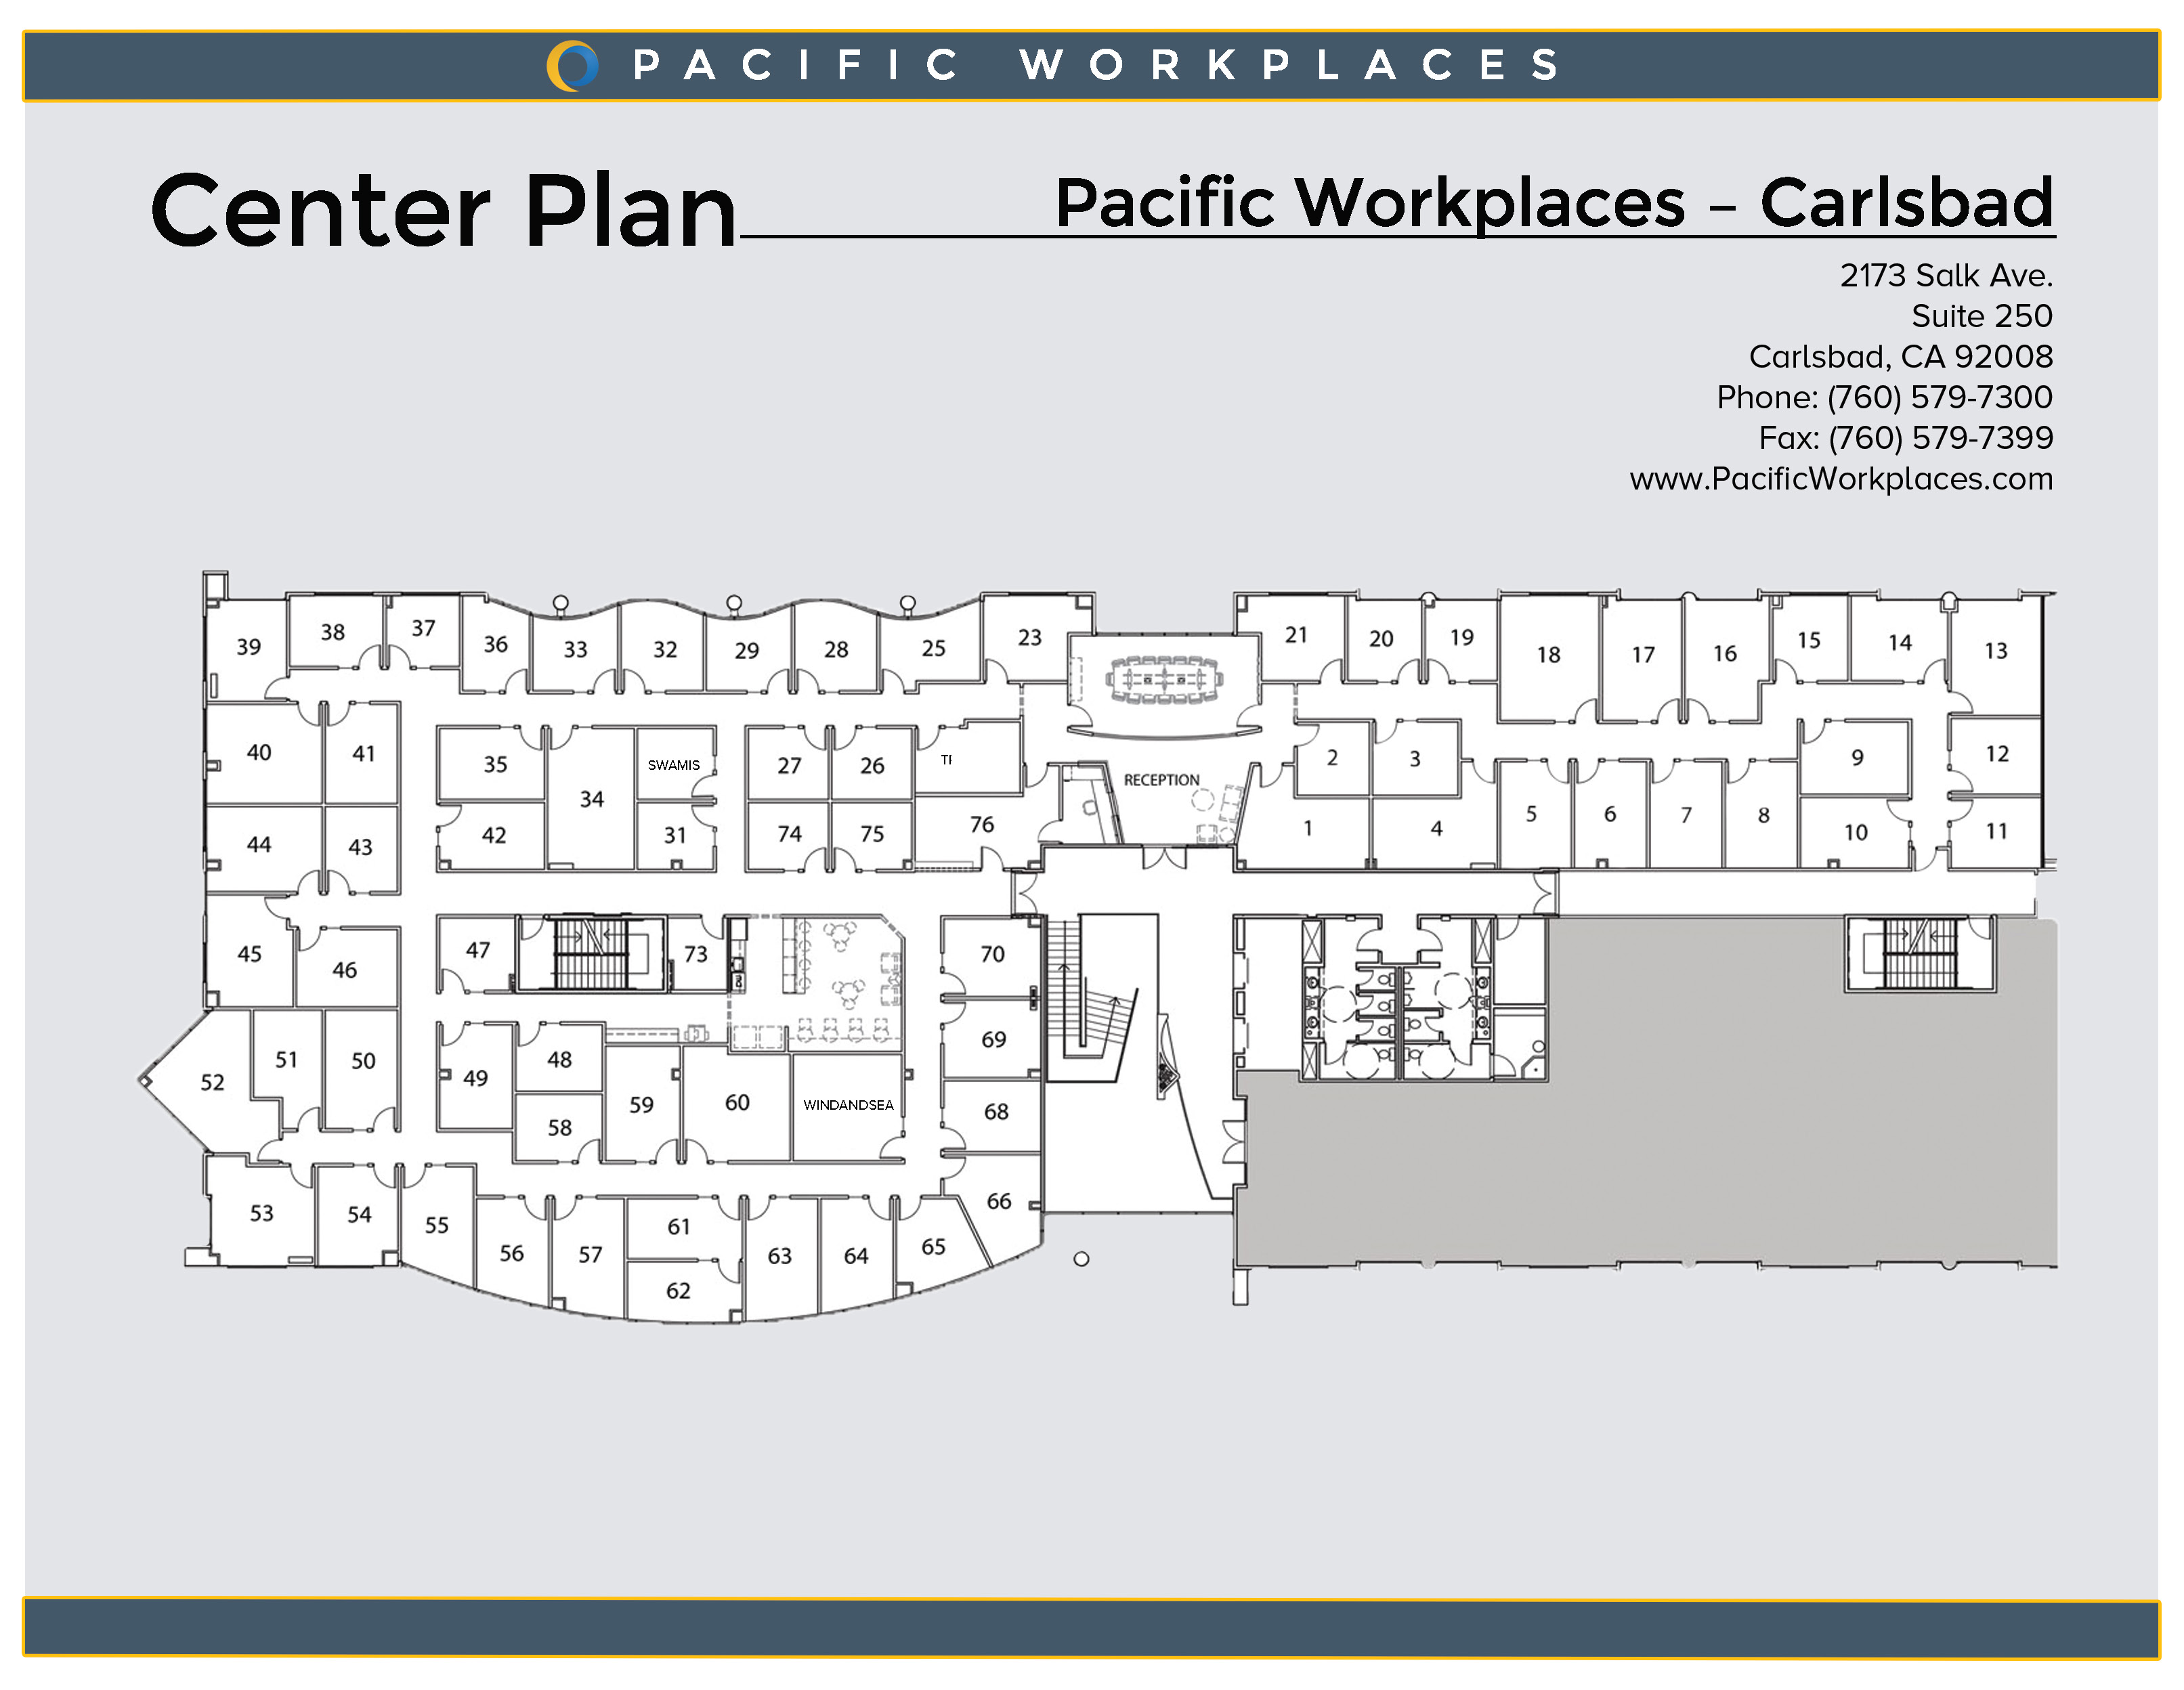 Pacific Workplaces Carlsbad Floor Plan